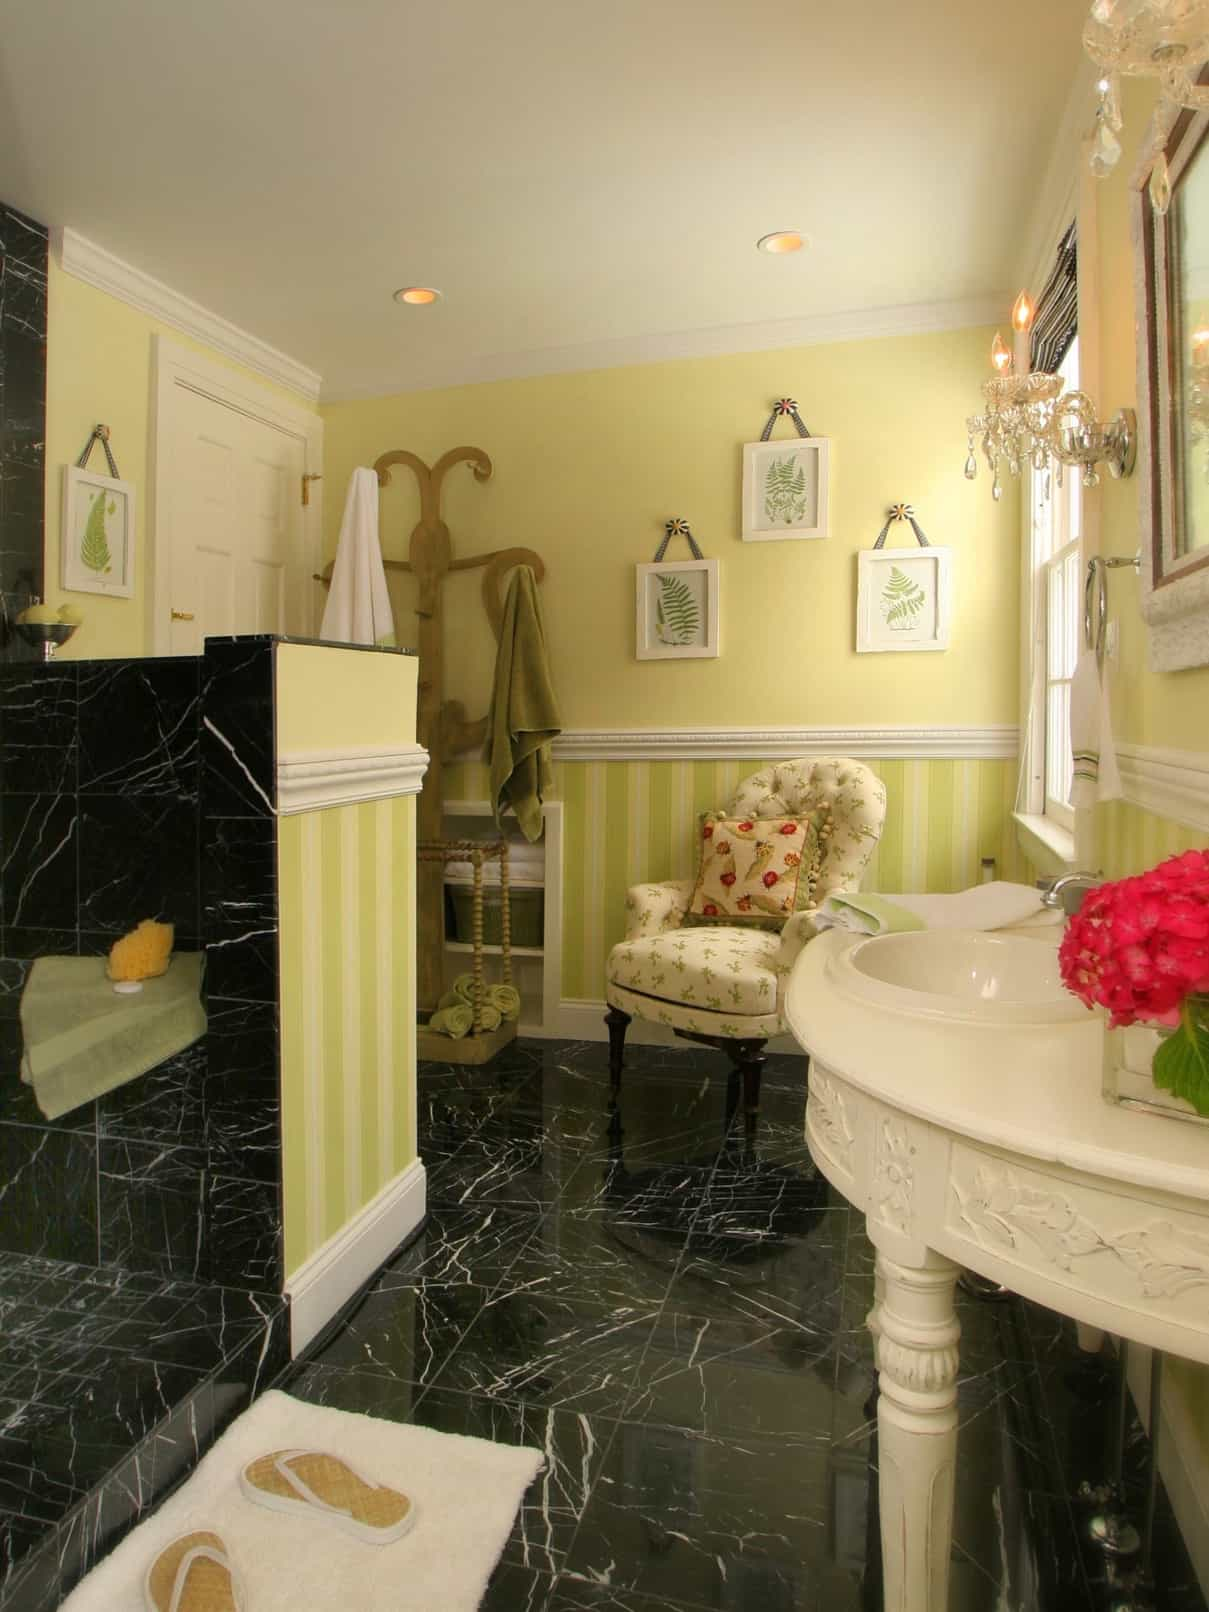 Featured Image of Cottage Bathroom With Yellow Wall Paint And Black Marble Tile